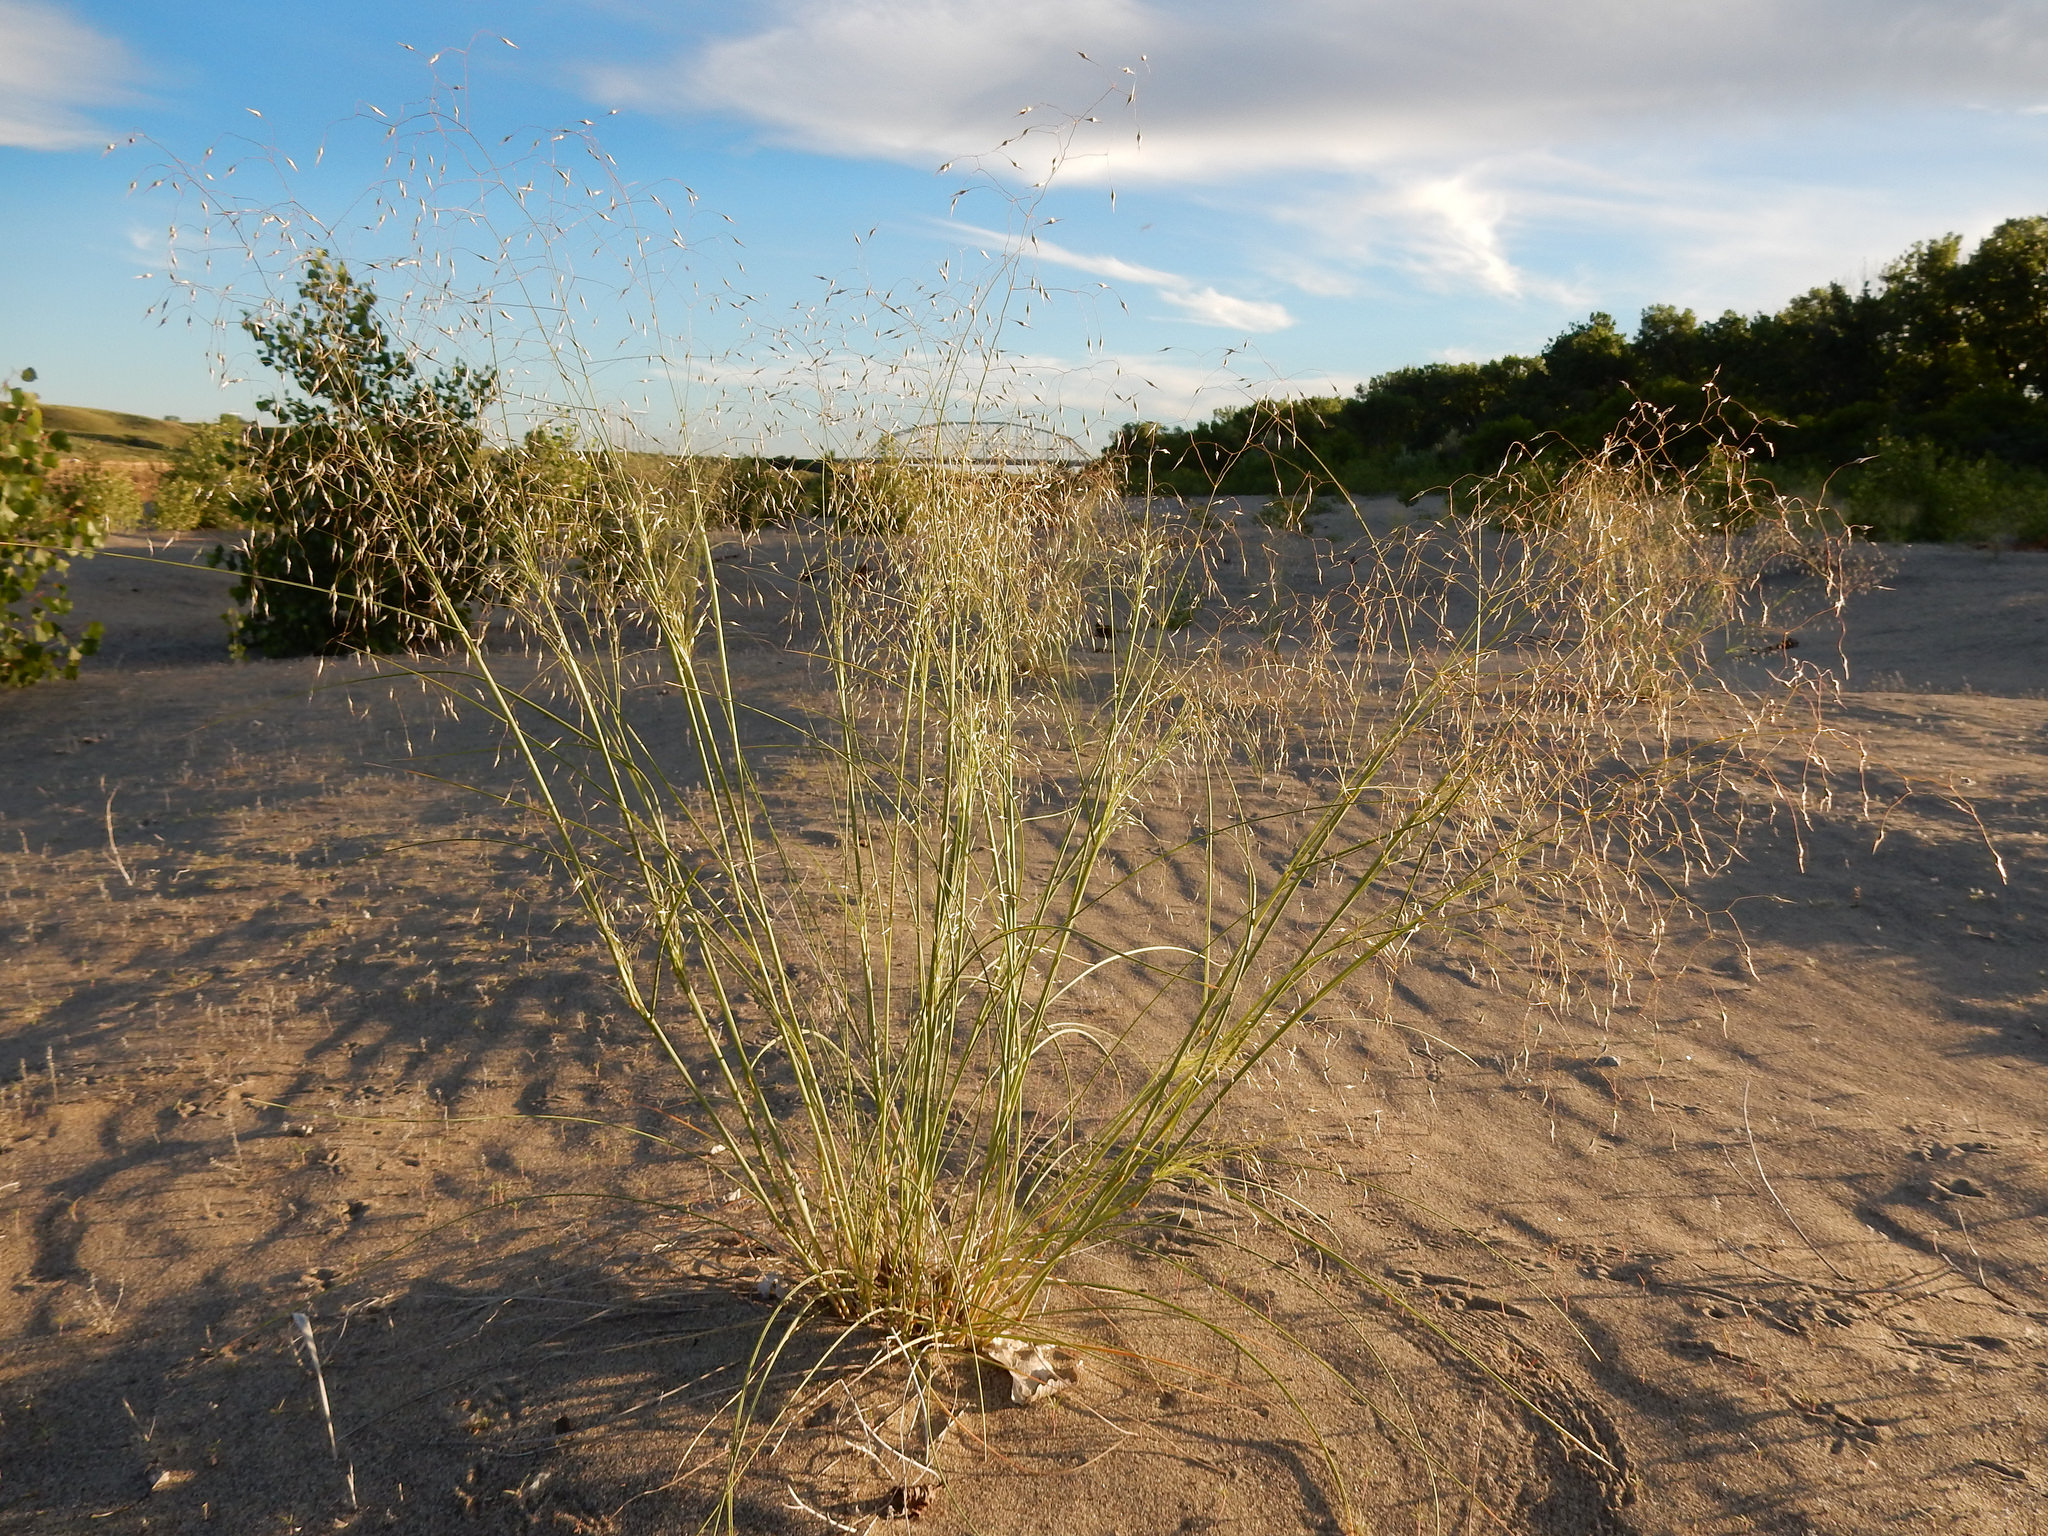 Ricegrass - DRY-LAND RICE that is an ATTRACTIVE ORNAMENTAL